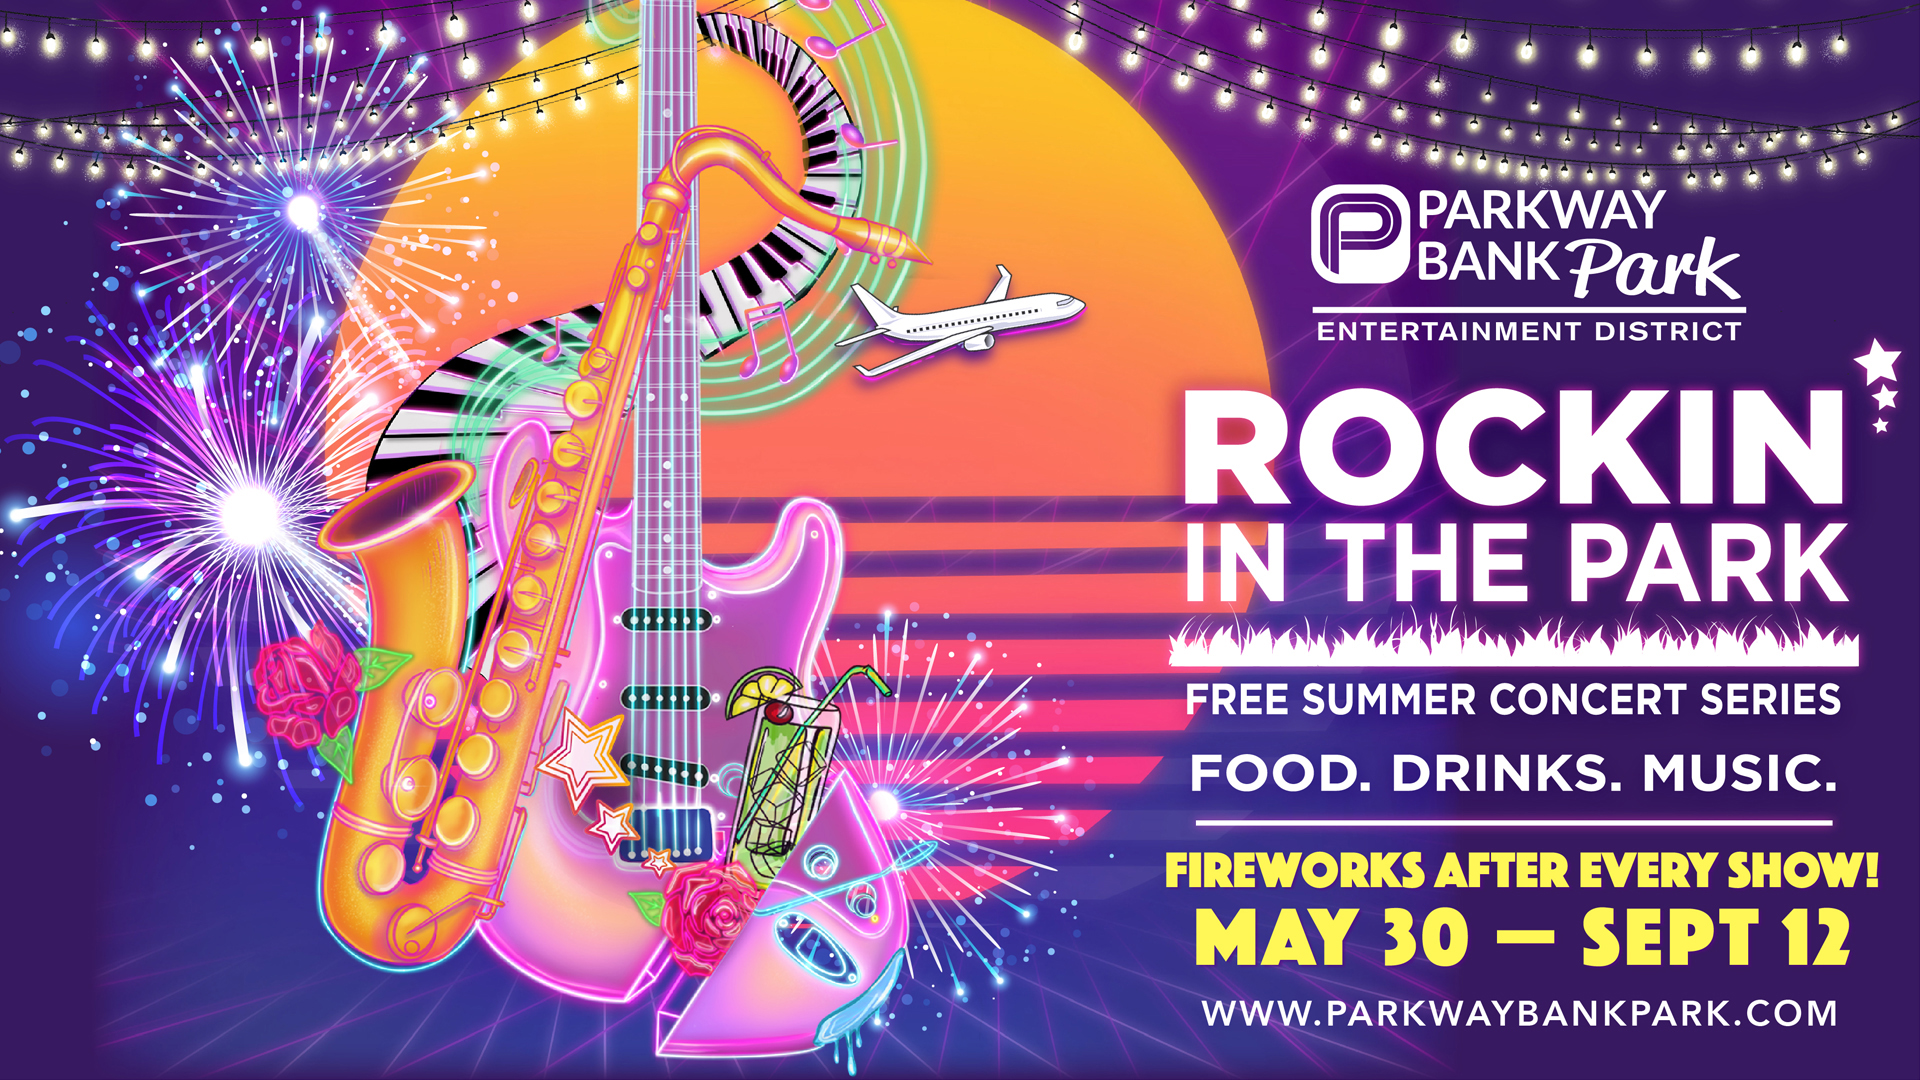 Rockin' in the Park at Parkway Bank Park